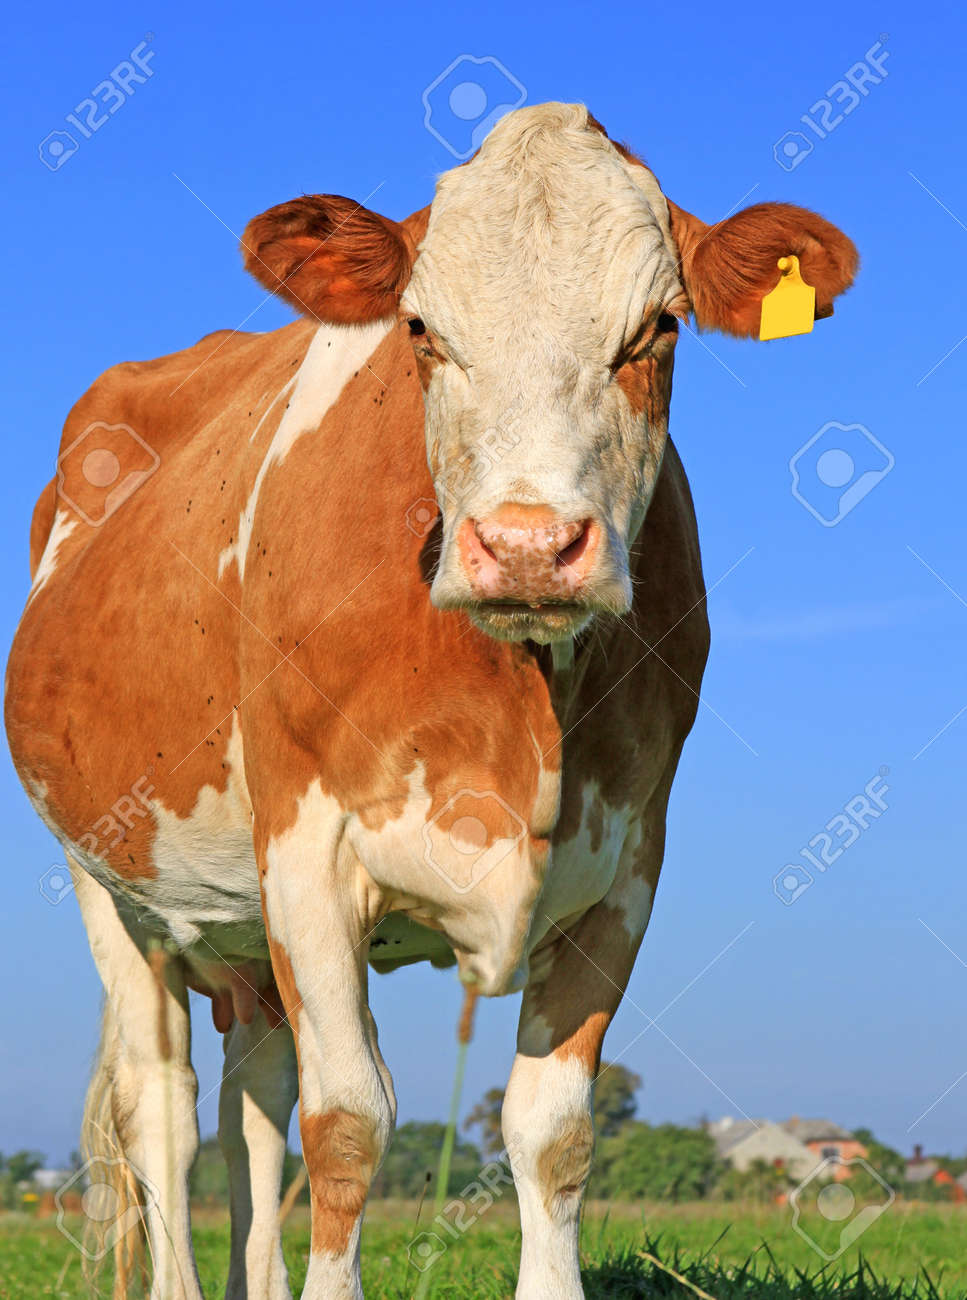 Cow on a summer pasture Stock Photo - 18153919